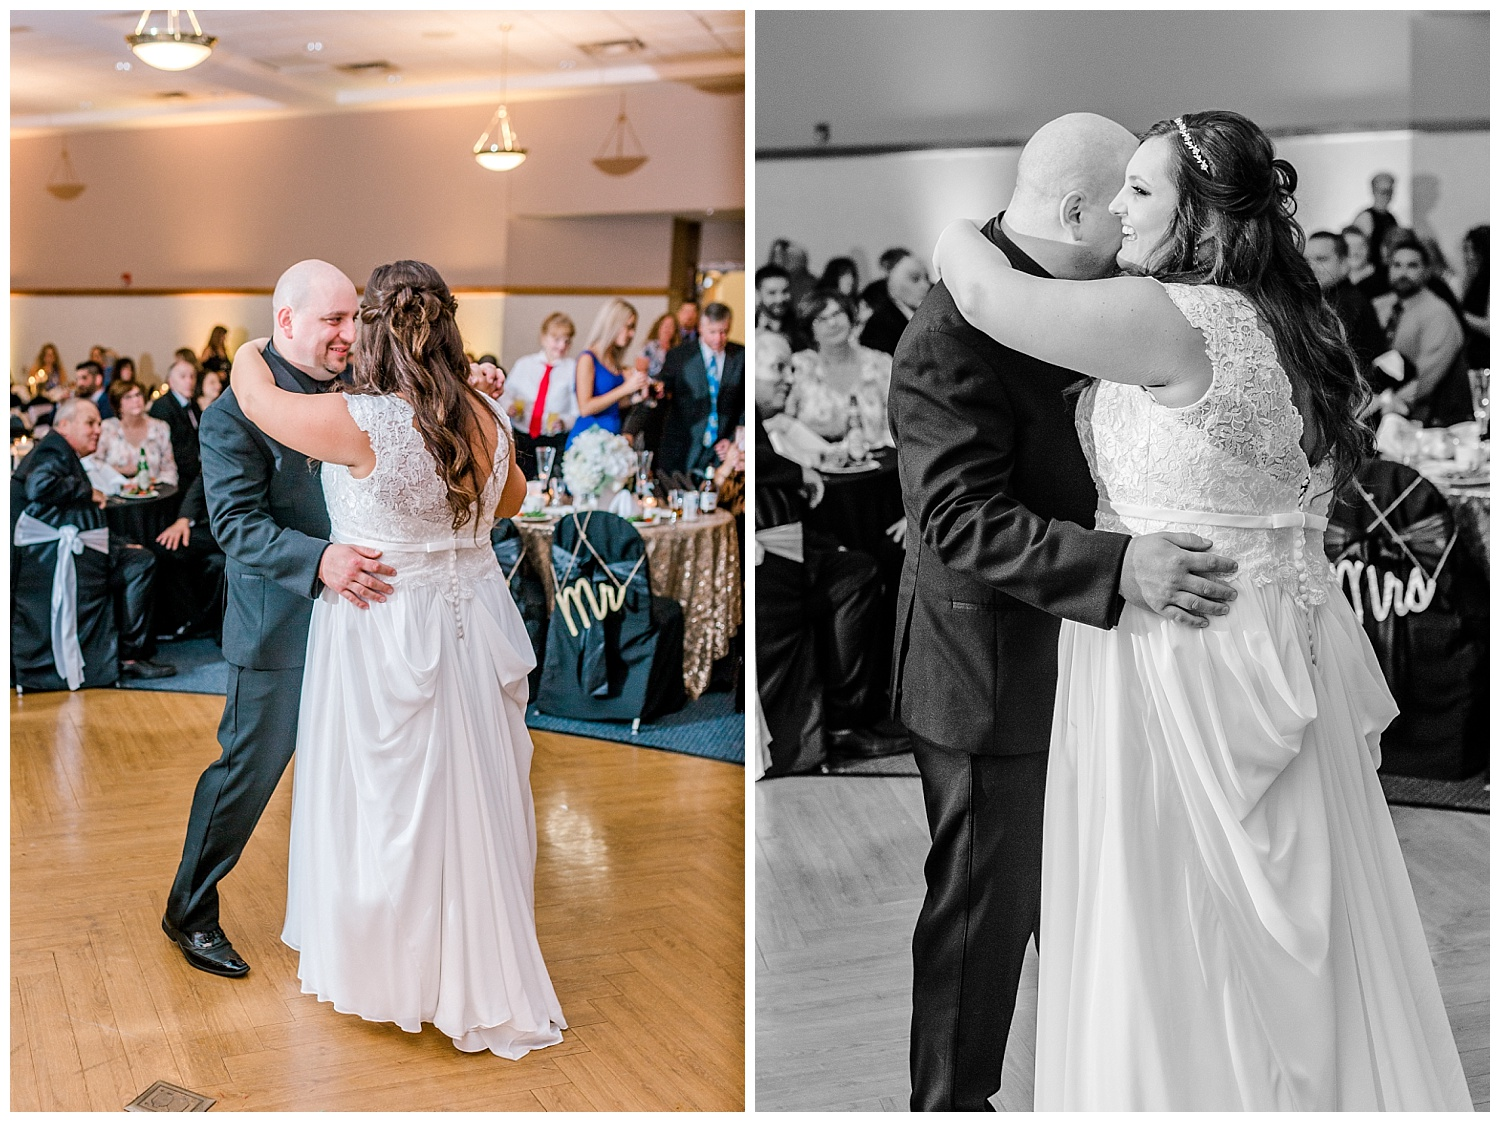 A Black and Gold Catholic Church Wedding in Wilkes Barre Pennsylvania by lehigh valley pennsylvania based wedding and lifestyle photographer Jeannie Lytle of Lytle Photography   Company (46).jpg